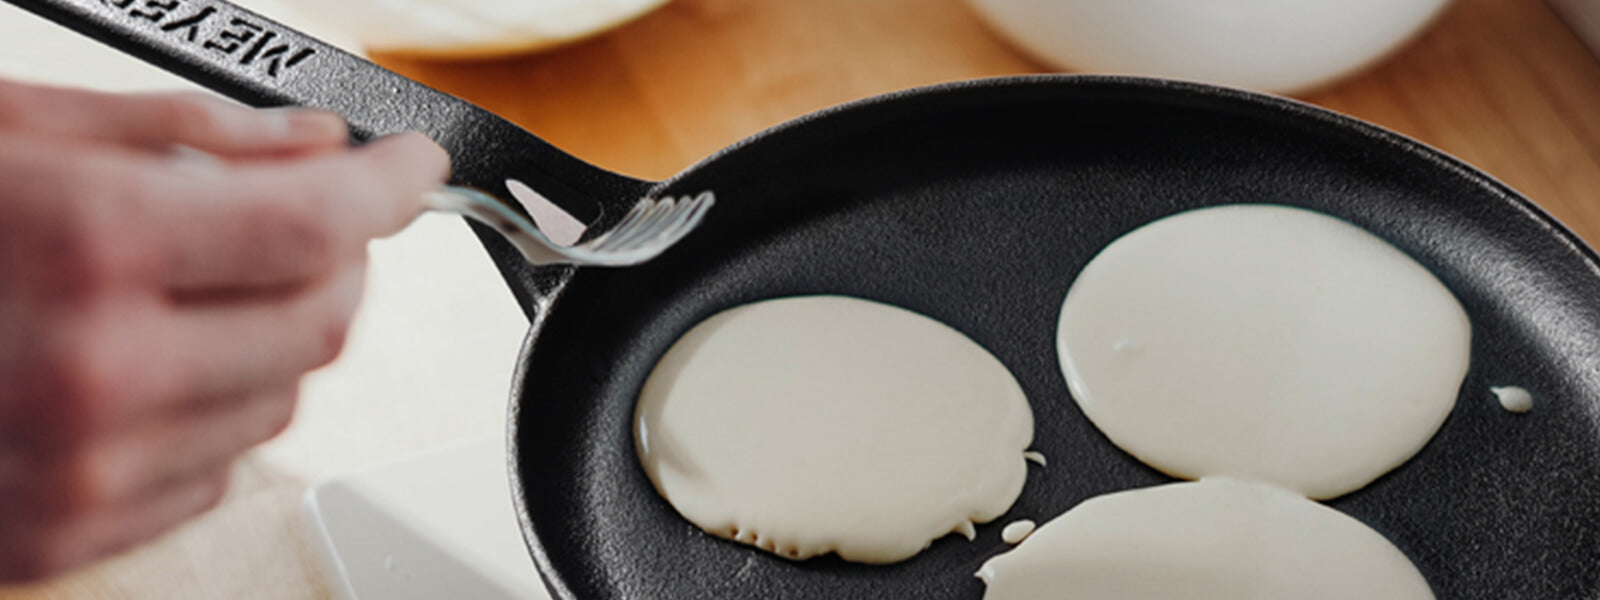 Myths About Cast Iron Cookware Busted